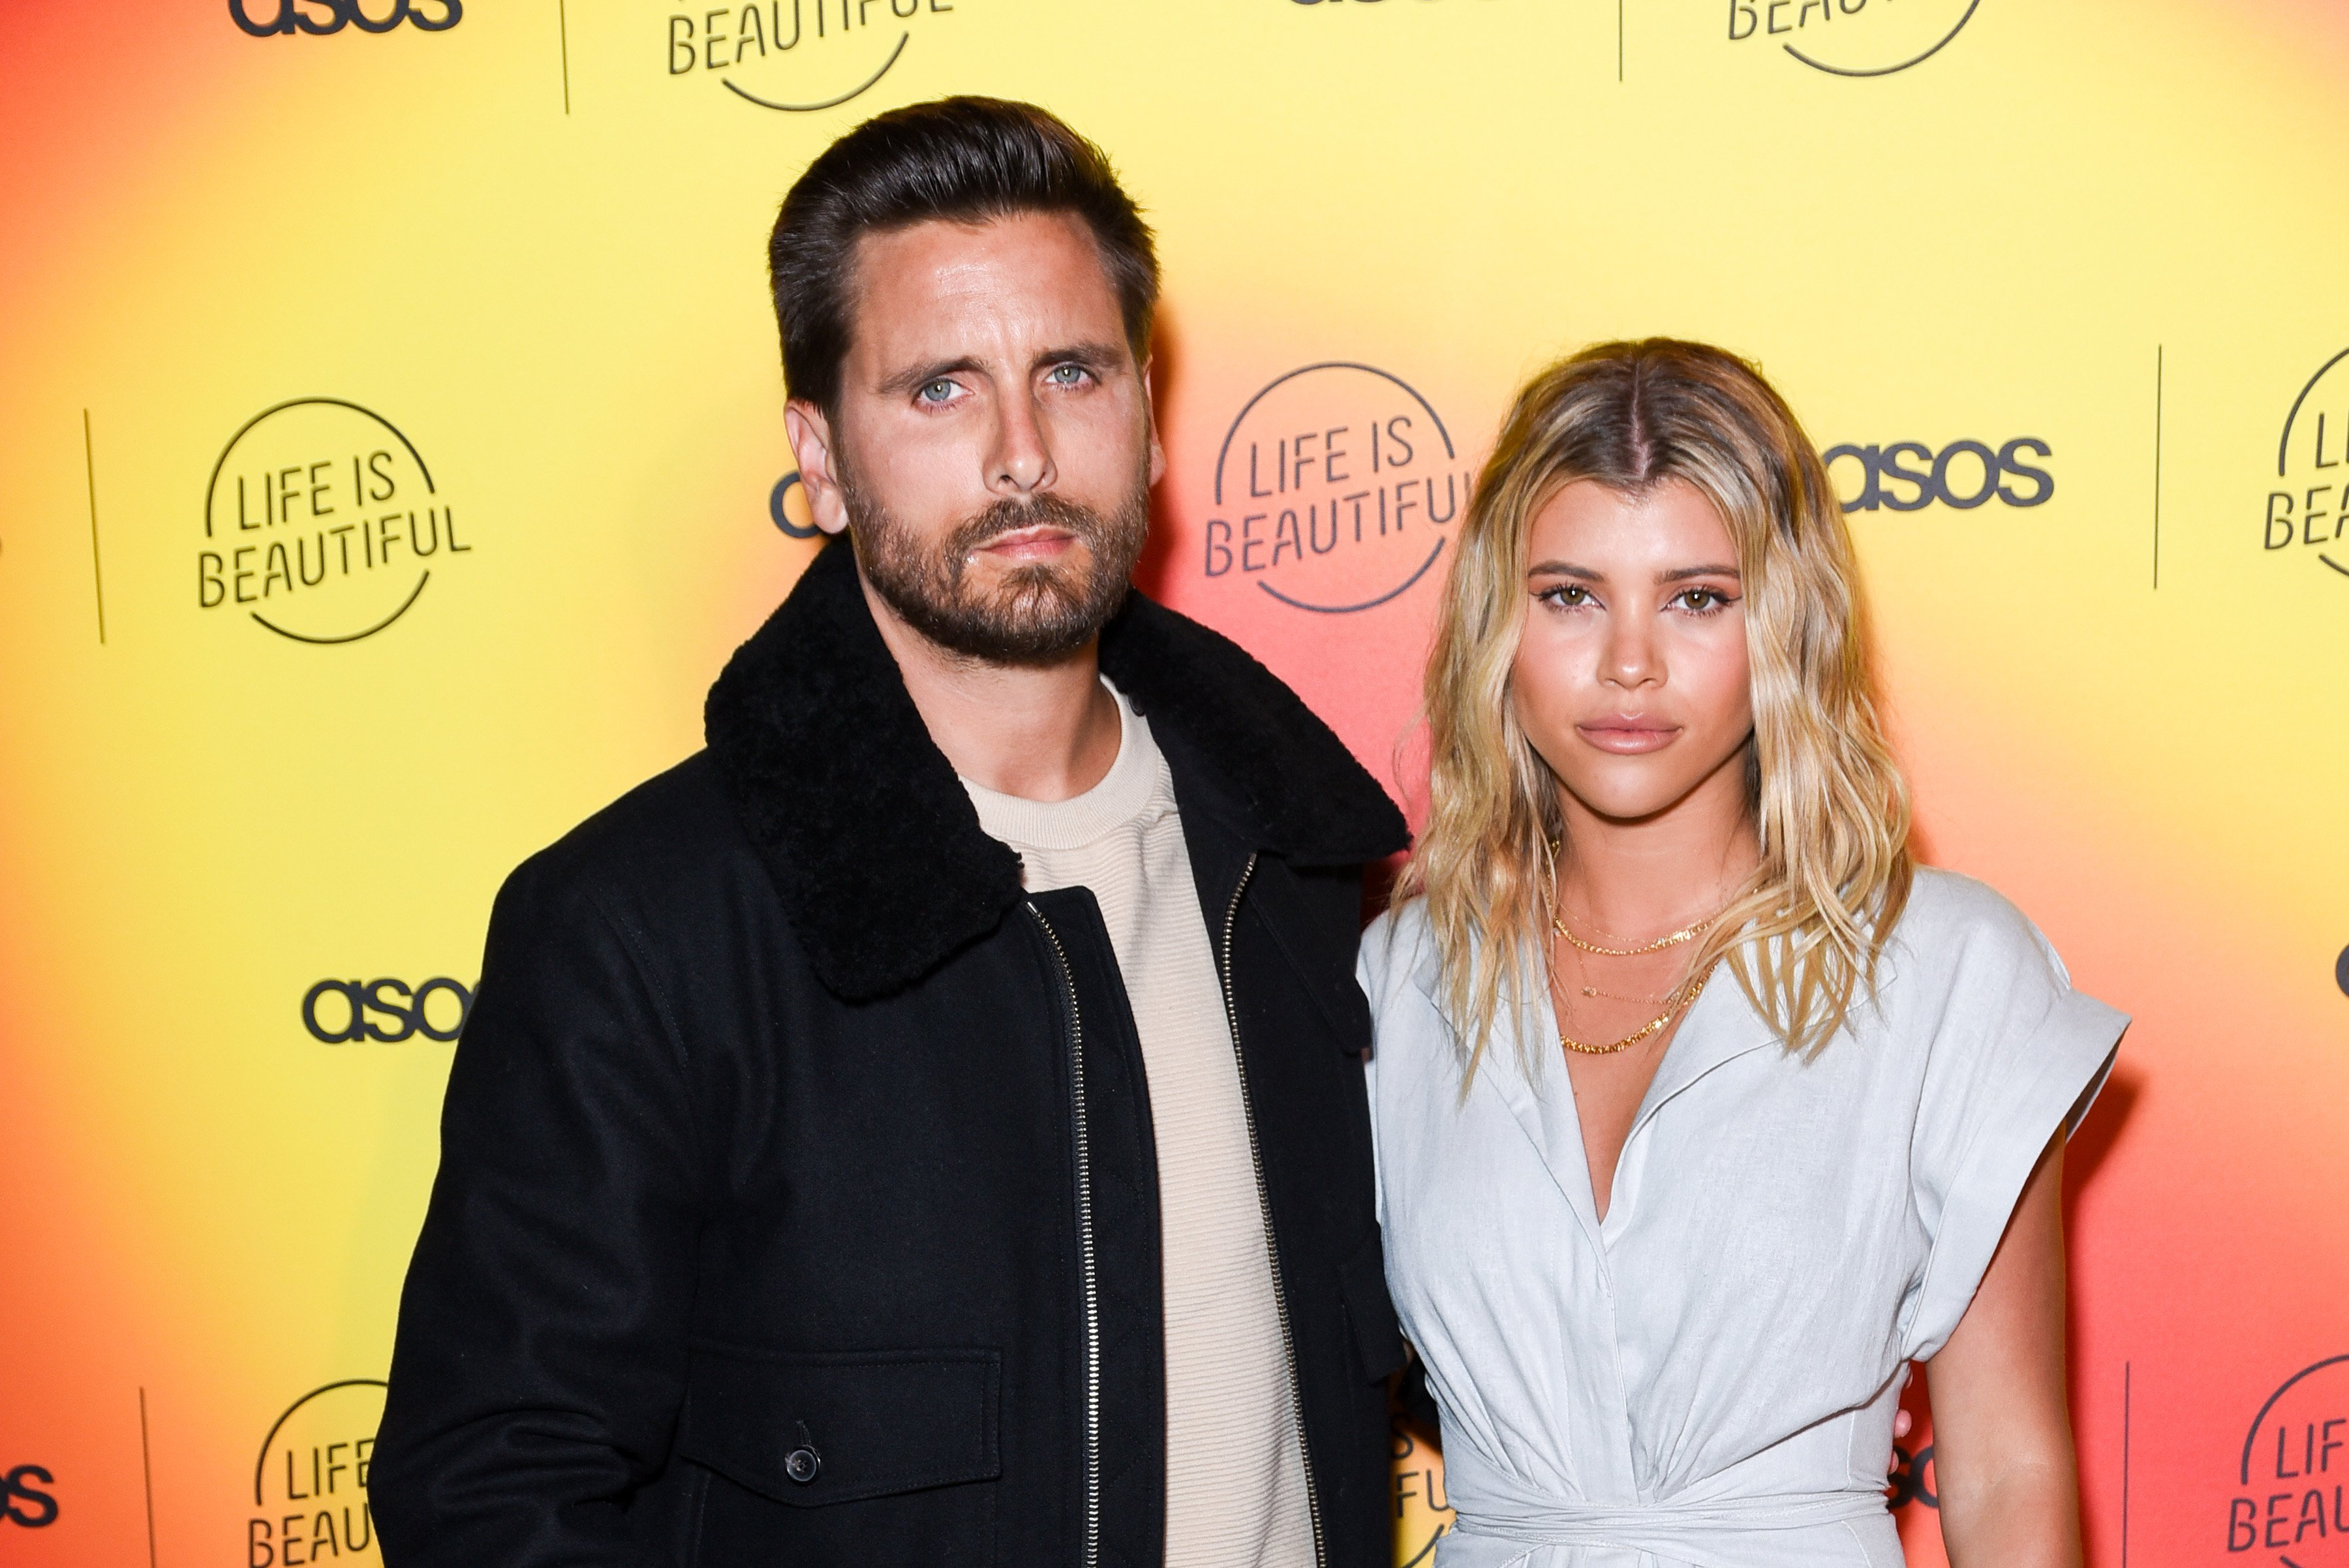 Scott Disick and Sofia Richie attend ASOS celebrates partnership with Life is Beautiful in Los Angeles, California on April 25, 2019 | Photo: Getty Images